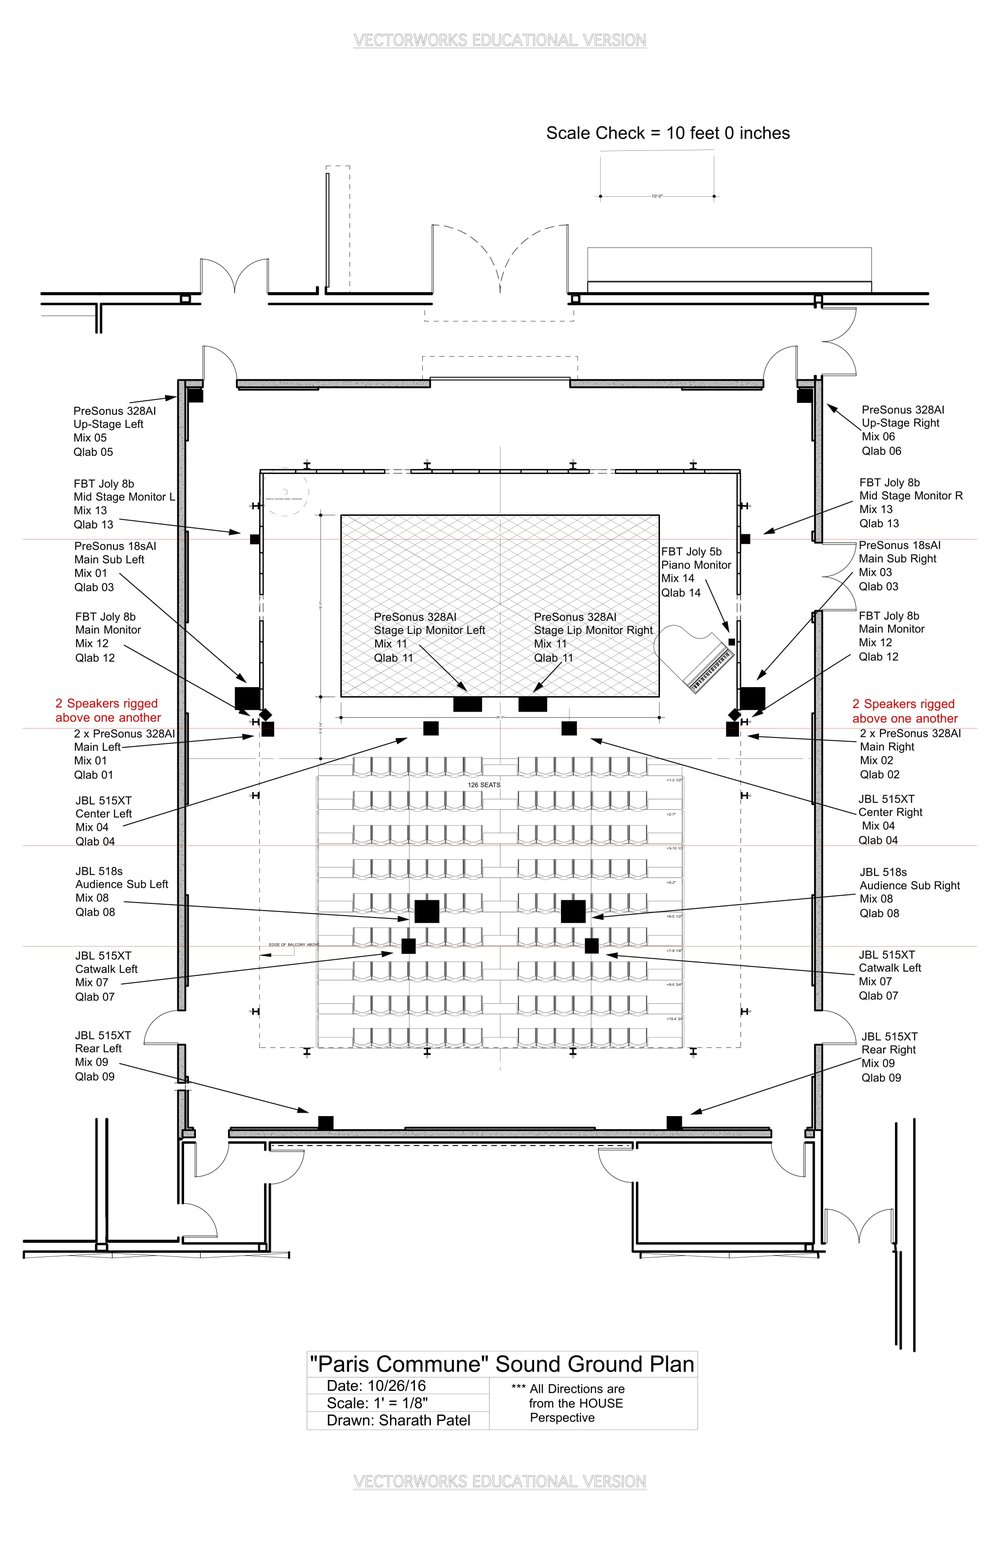 PC Sound Ground Plan 10-26-16-1.jpg